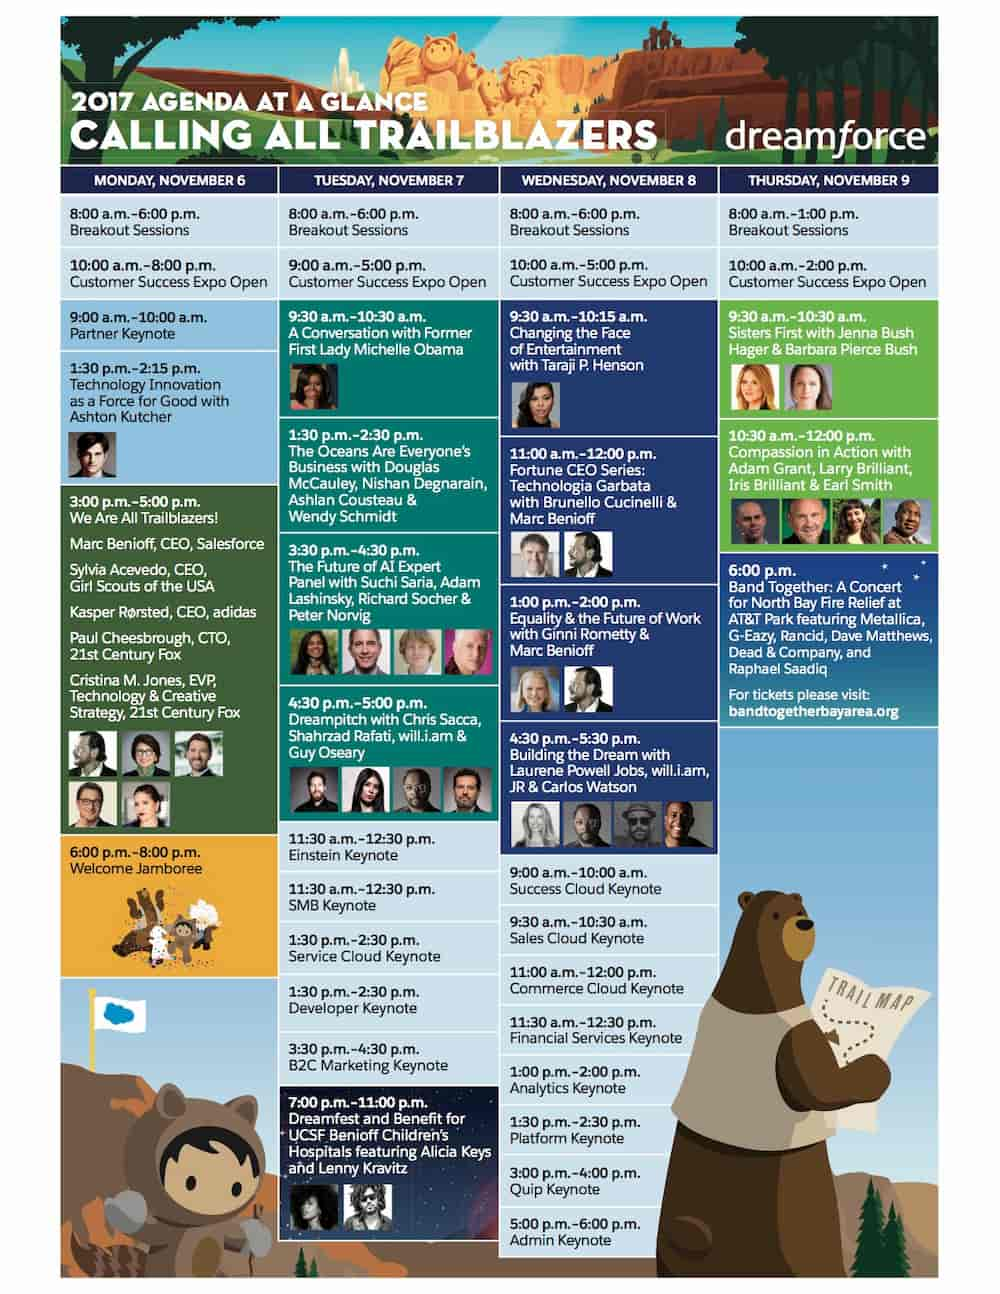 agenda dreamforce 2017